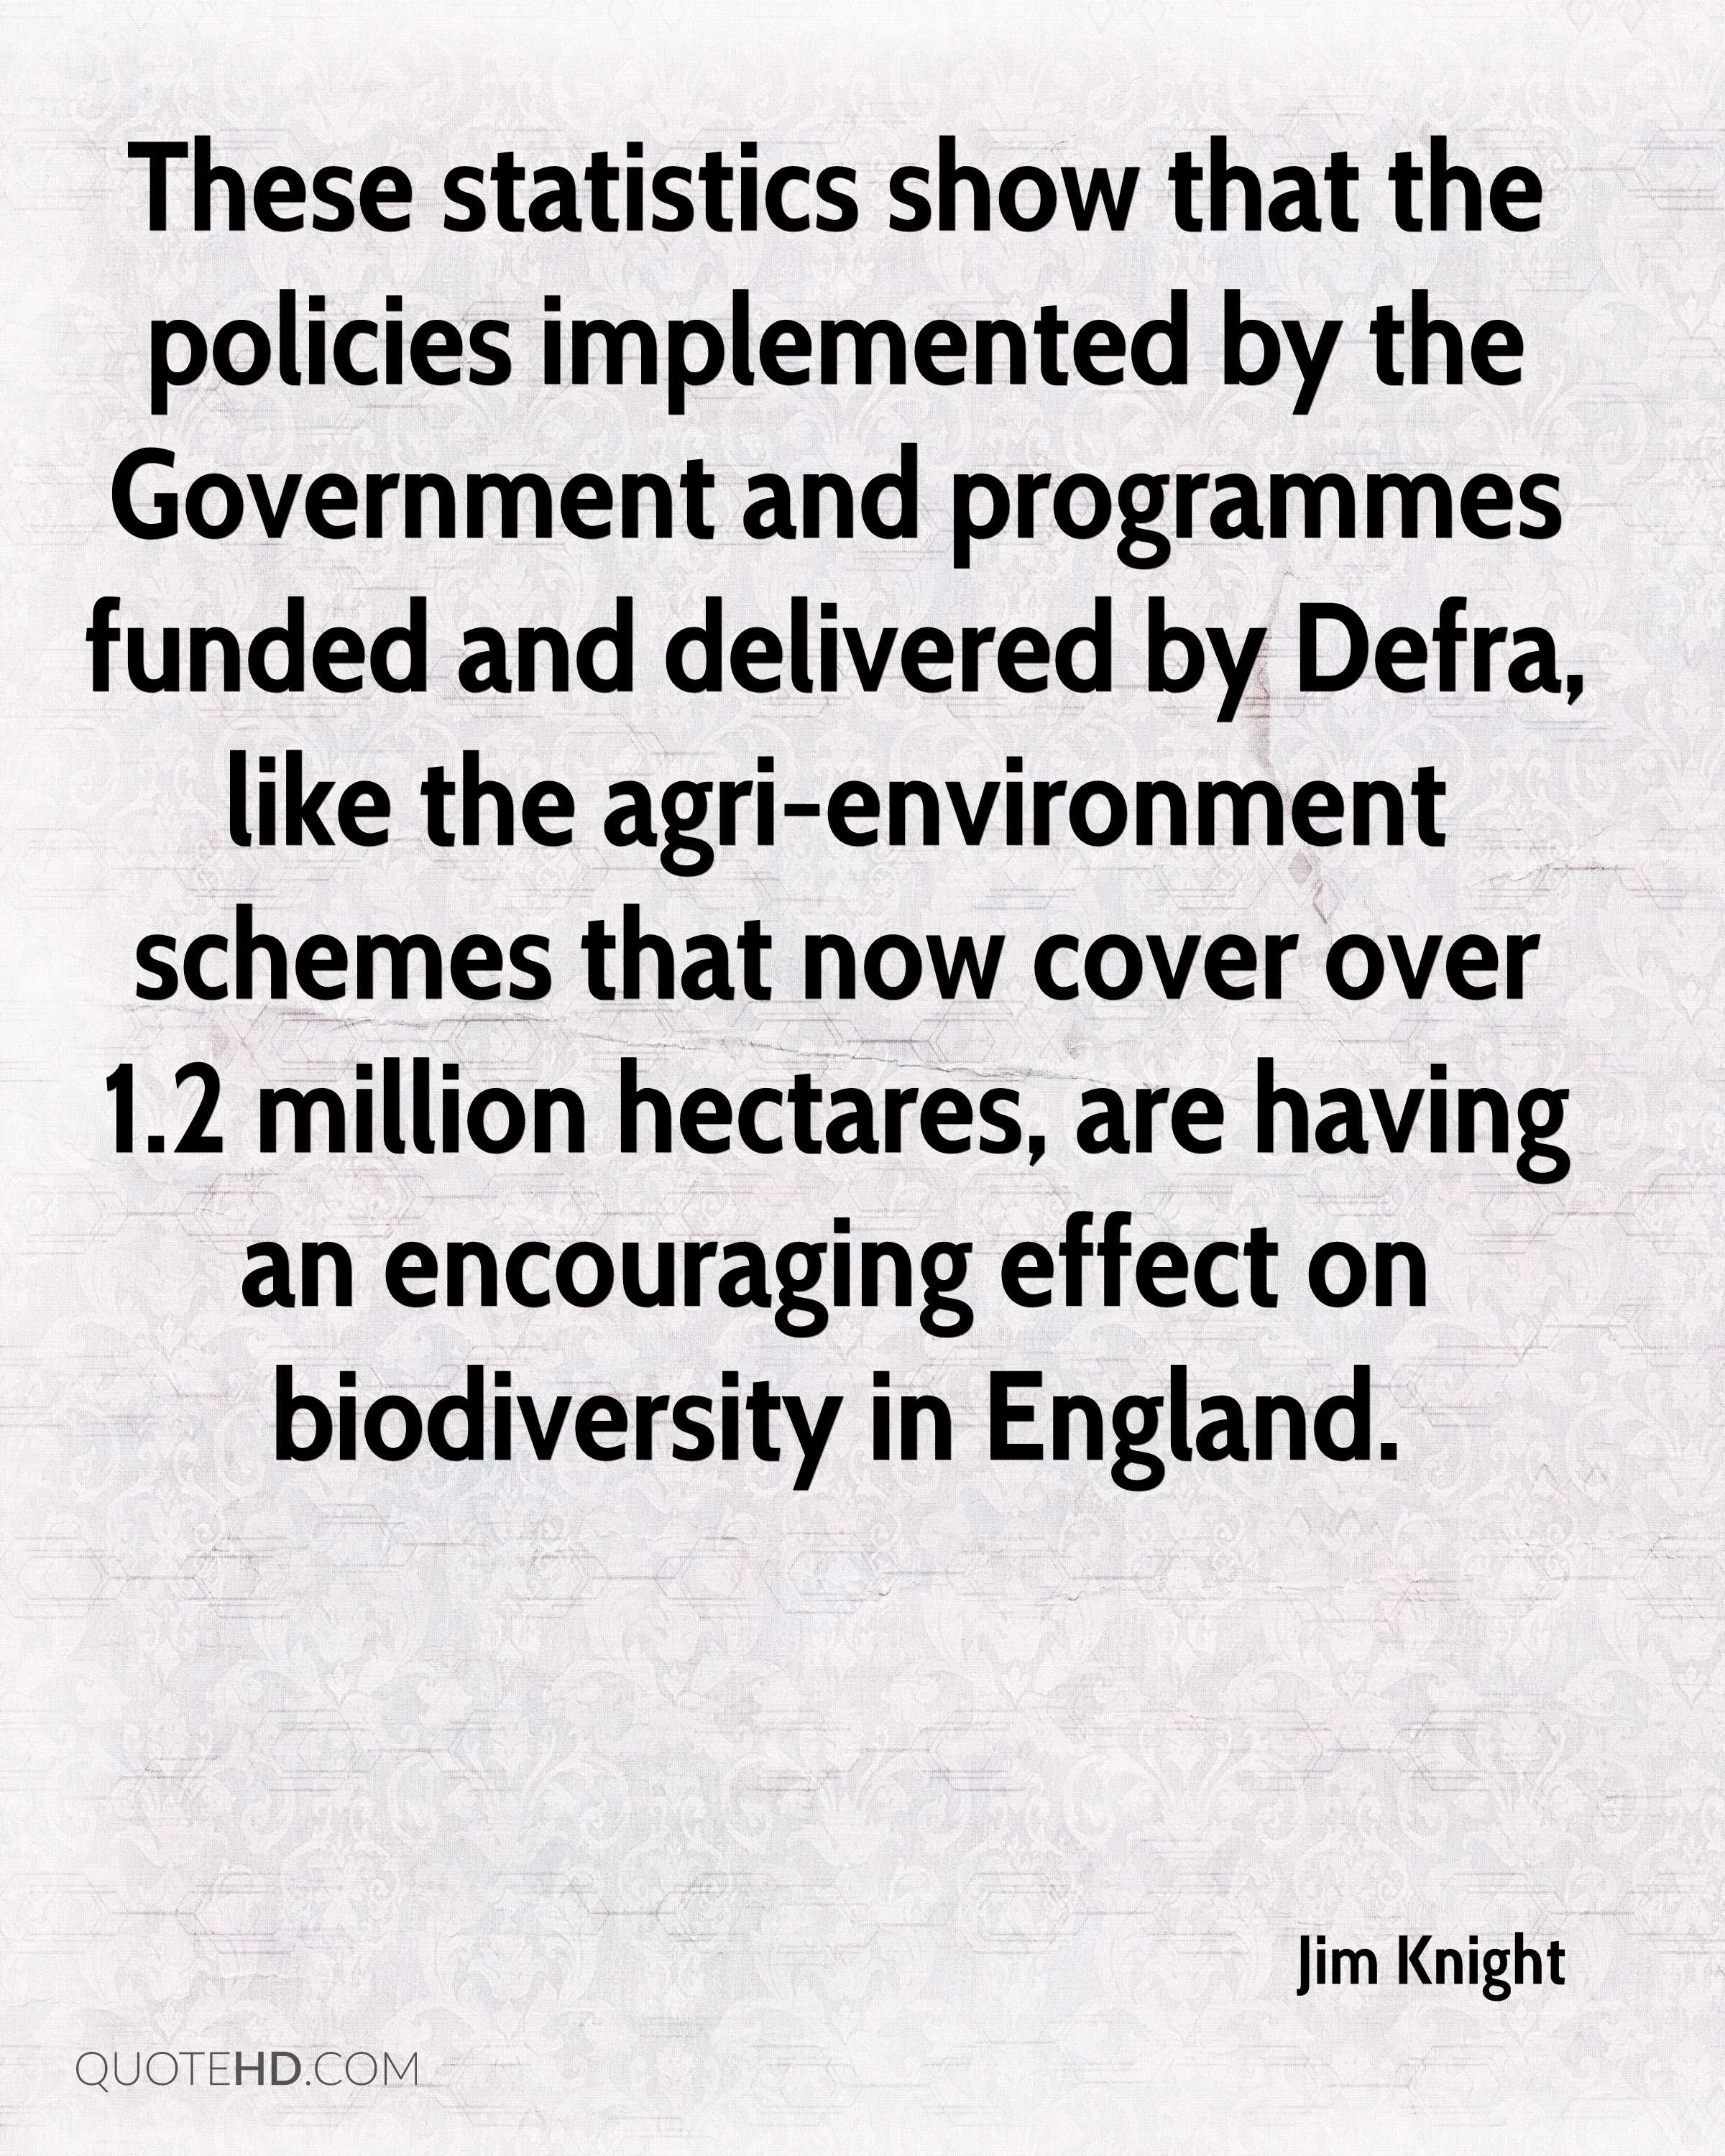 These statistics show that the policies implemented by the Government and programmes funded and delivered by Defra, like the agri-environment schemes that now cover over 1.2 million hectares, are having an encouraging effect on biodiversity in England.